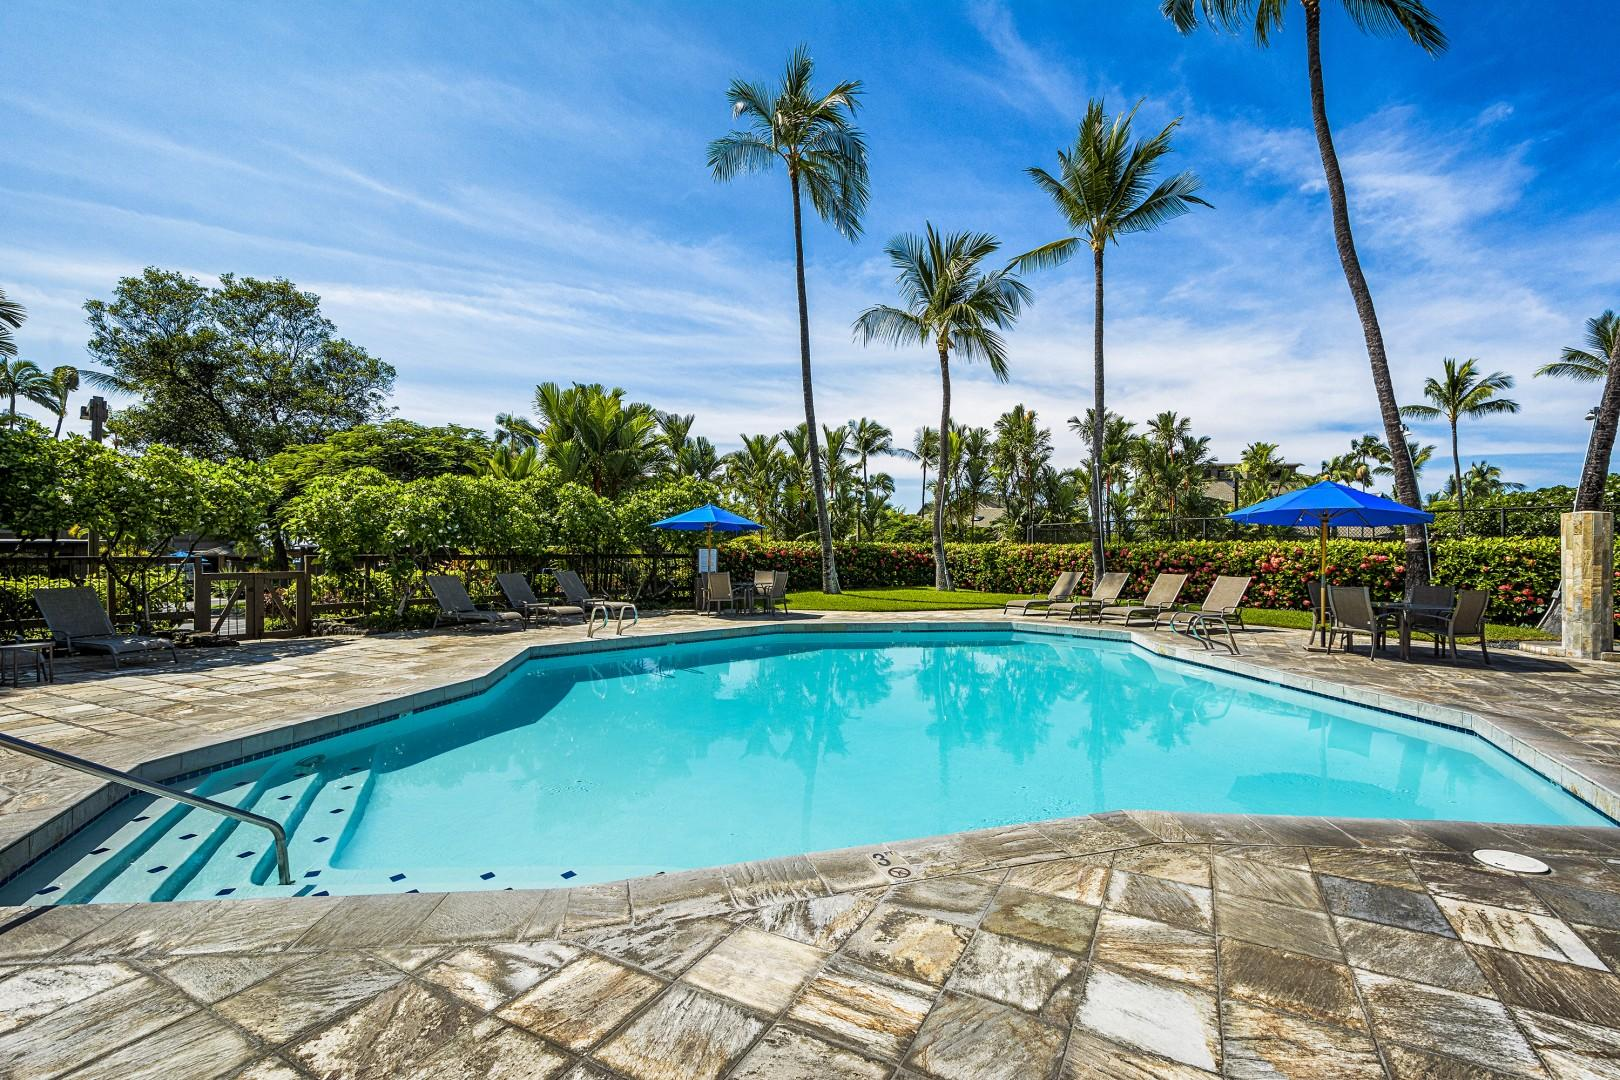 Perfect pool for relaxing in the Kona sun!